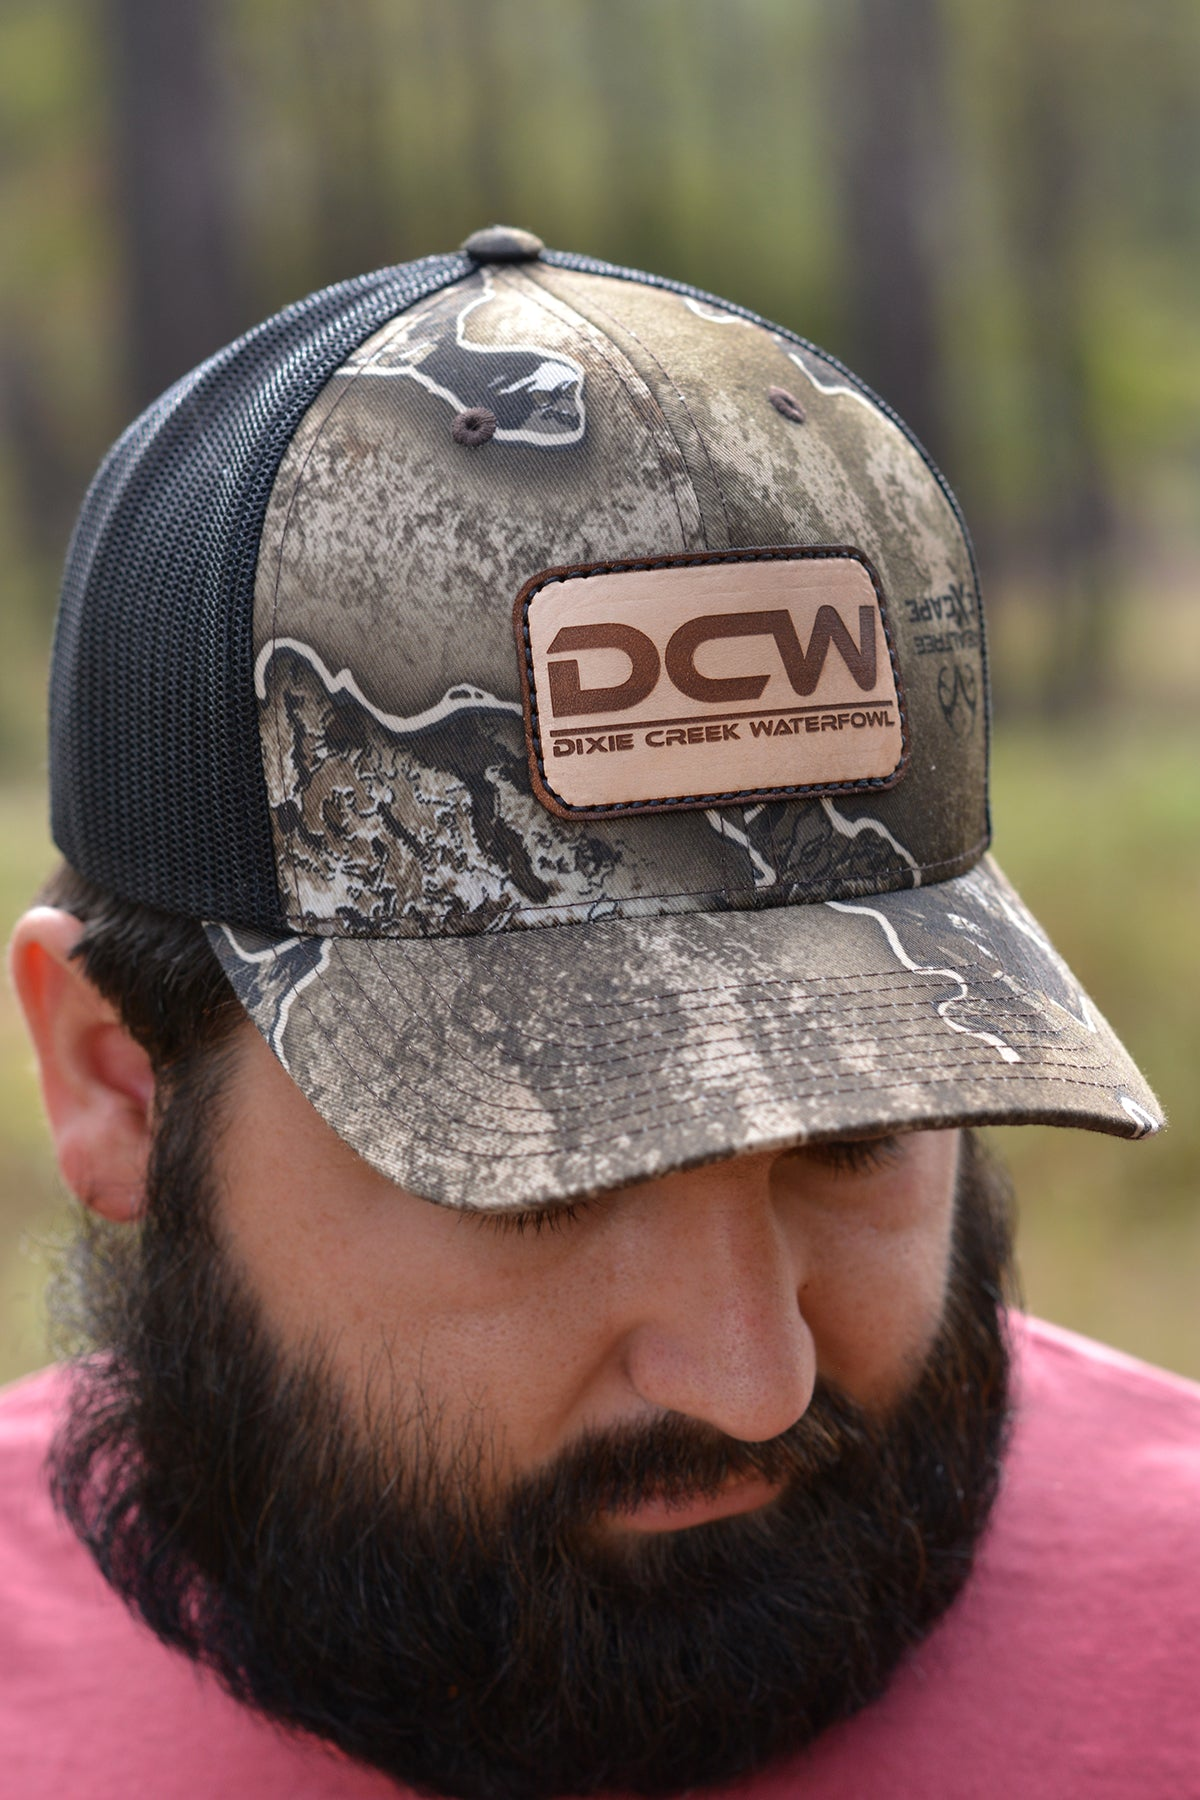 DCW Realtree EXCAPE With Leather Patch